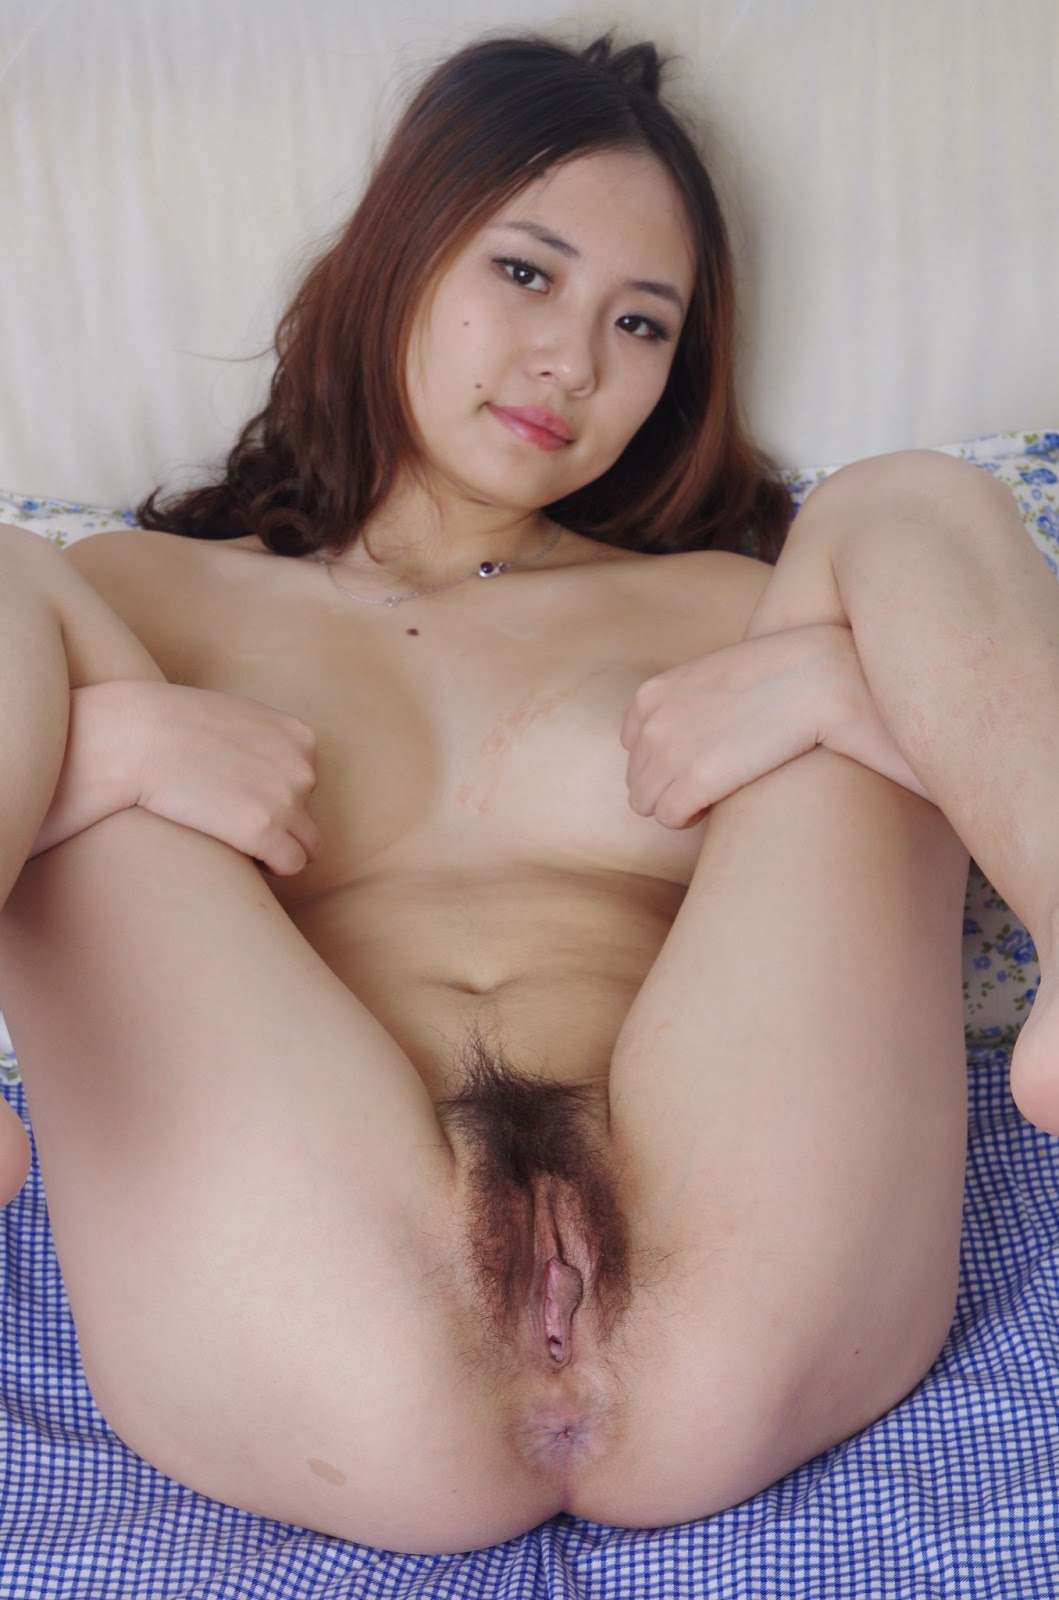 cute korean woman naked